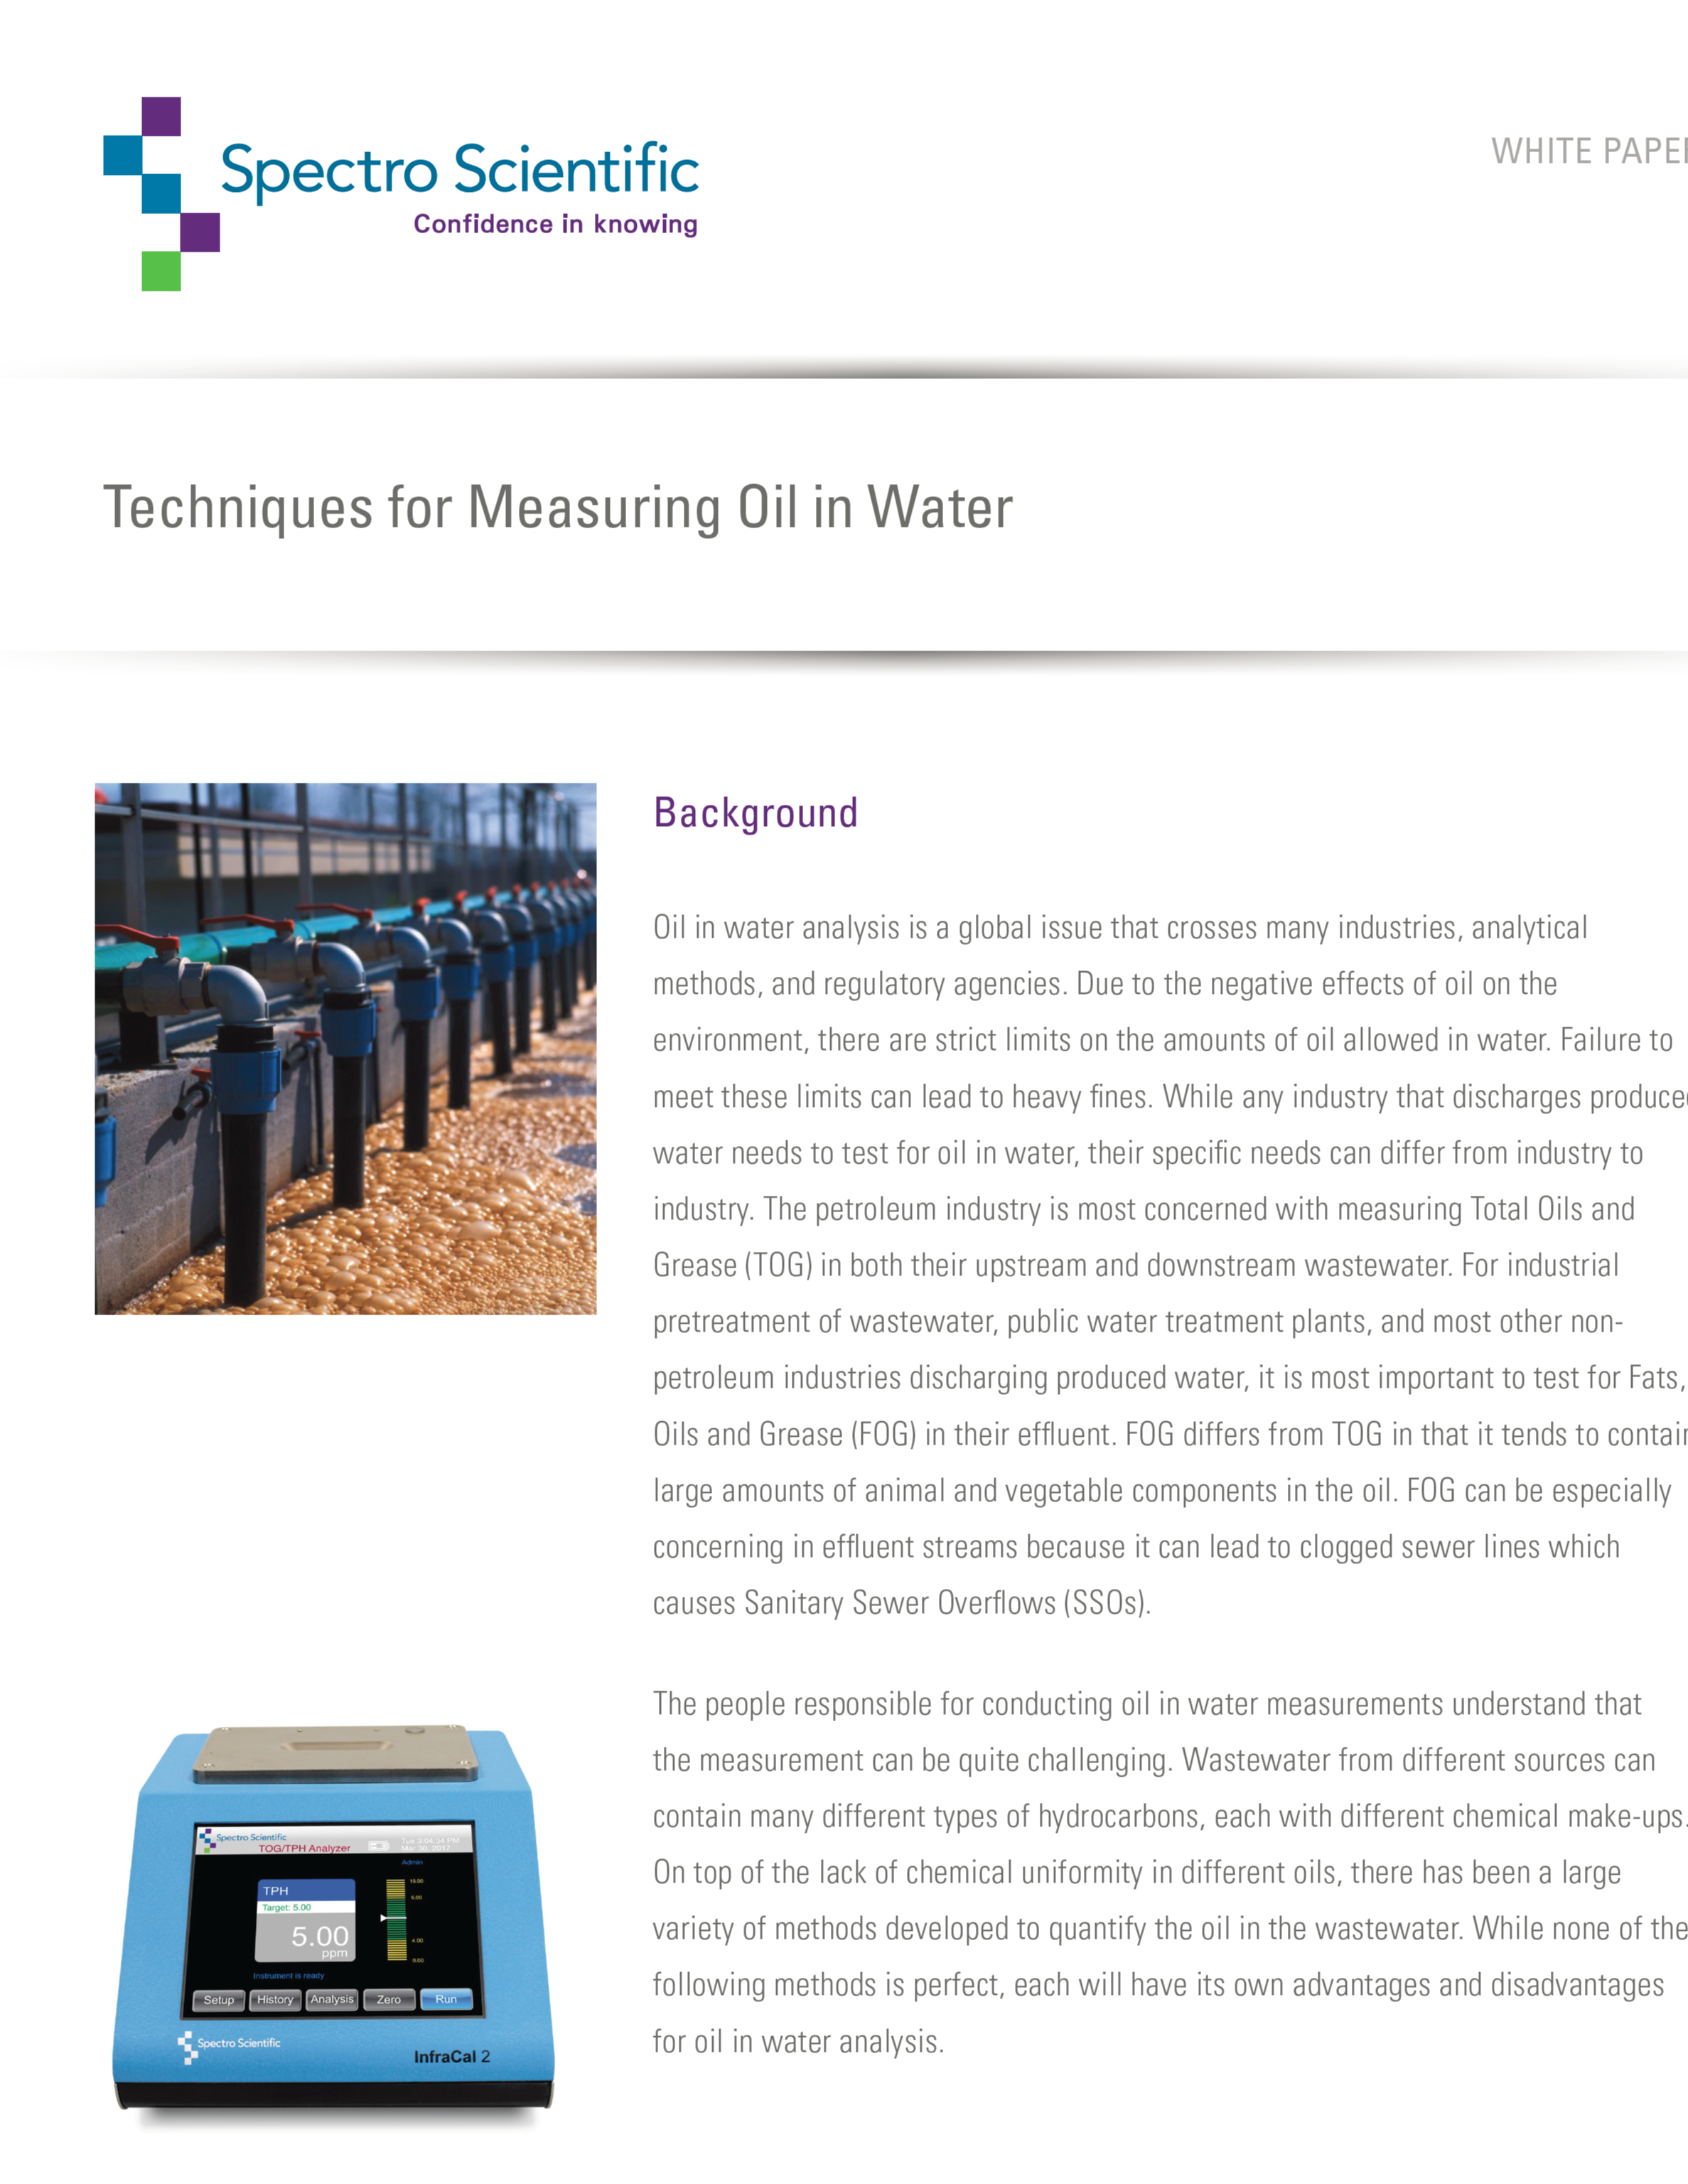 Techniques_for_Measuring_Oil_in_Water.png